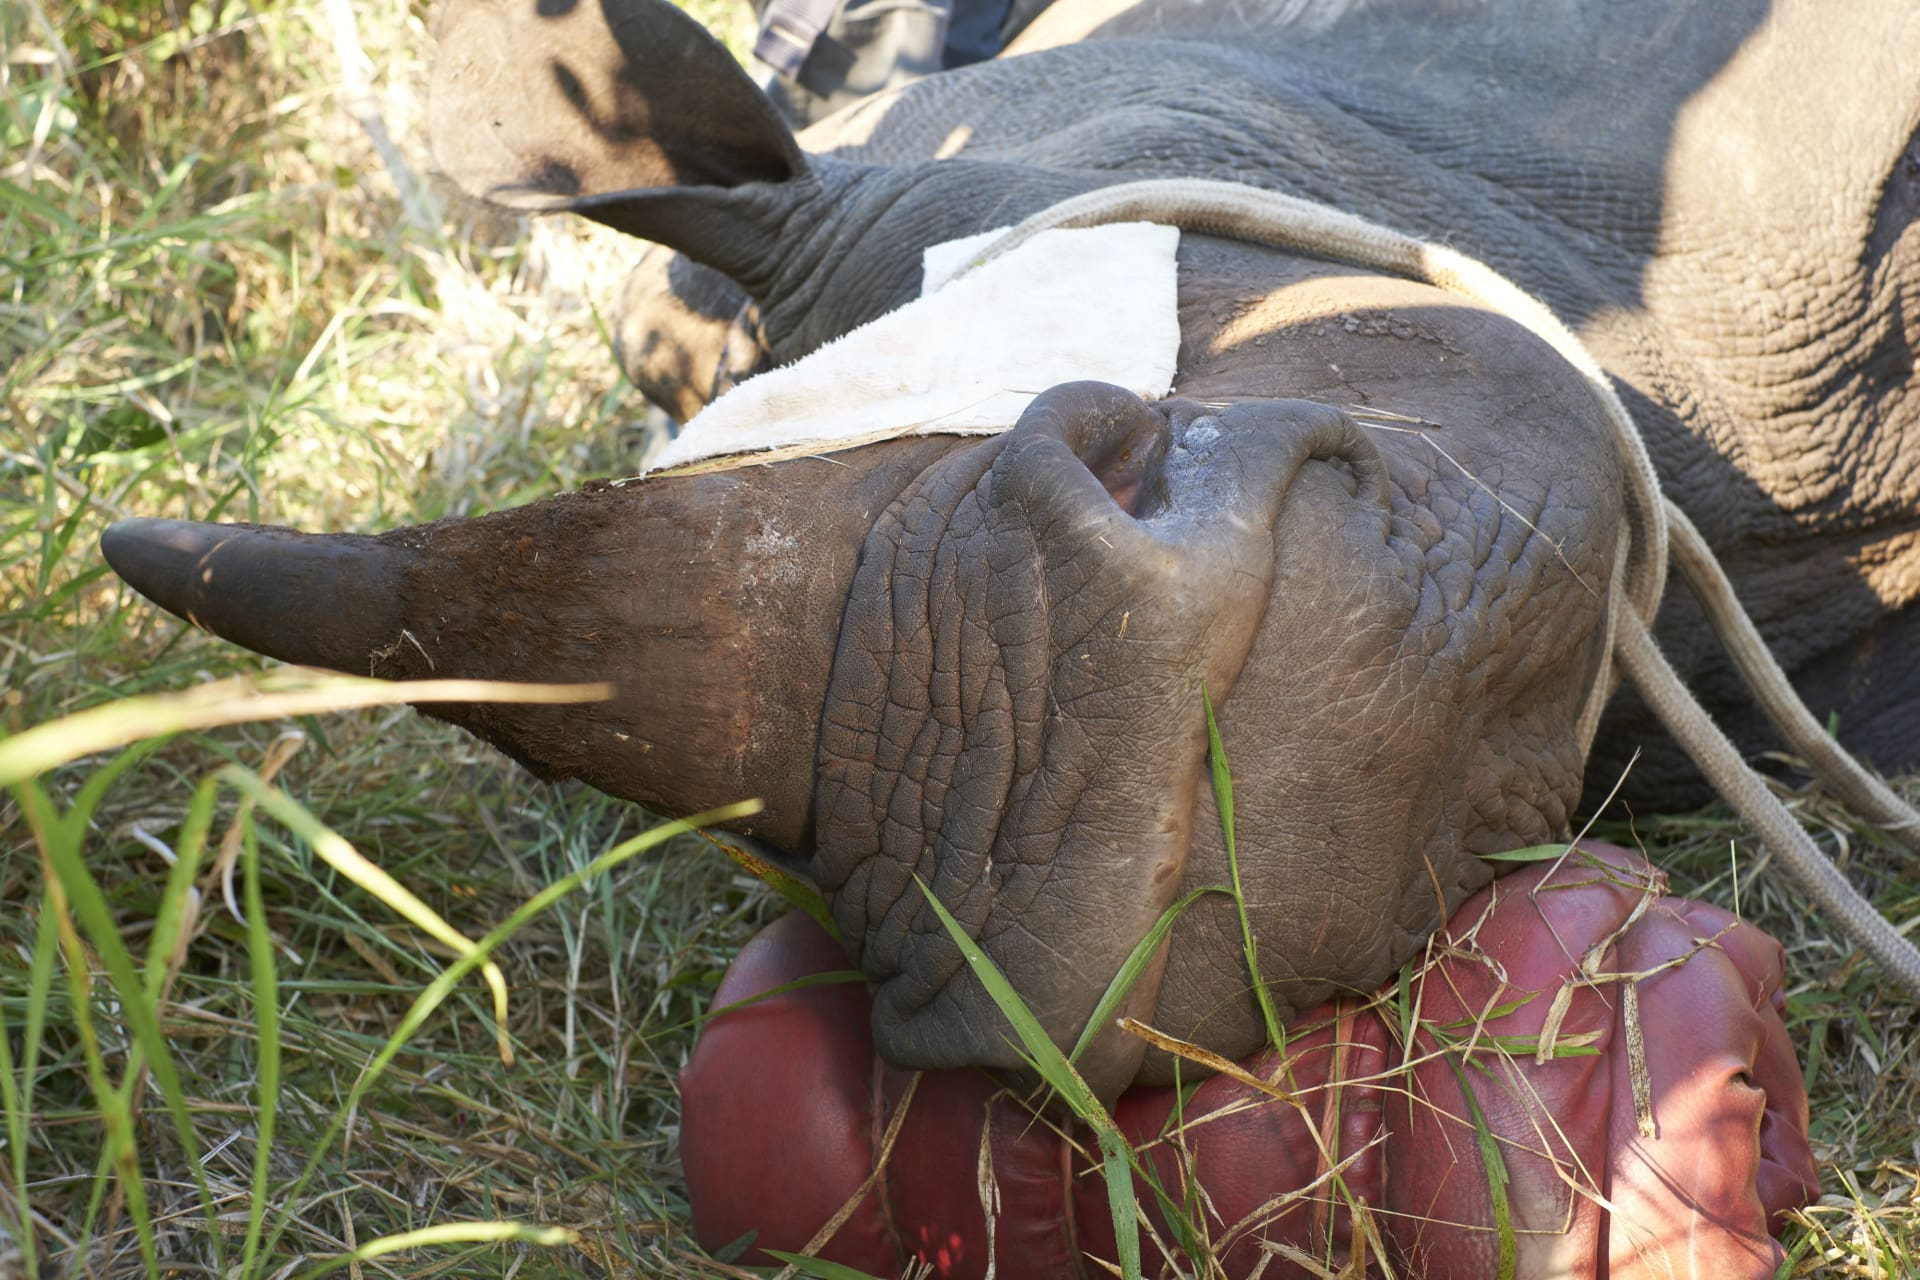 The rhino retains its sense of smell, sight, and hearing. So precautionary measures are taken to ensure the animal's comfort and safety.